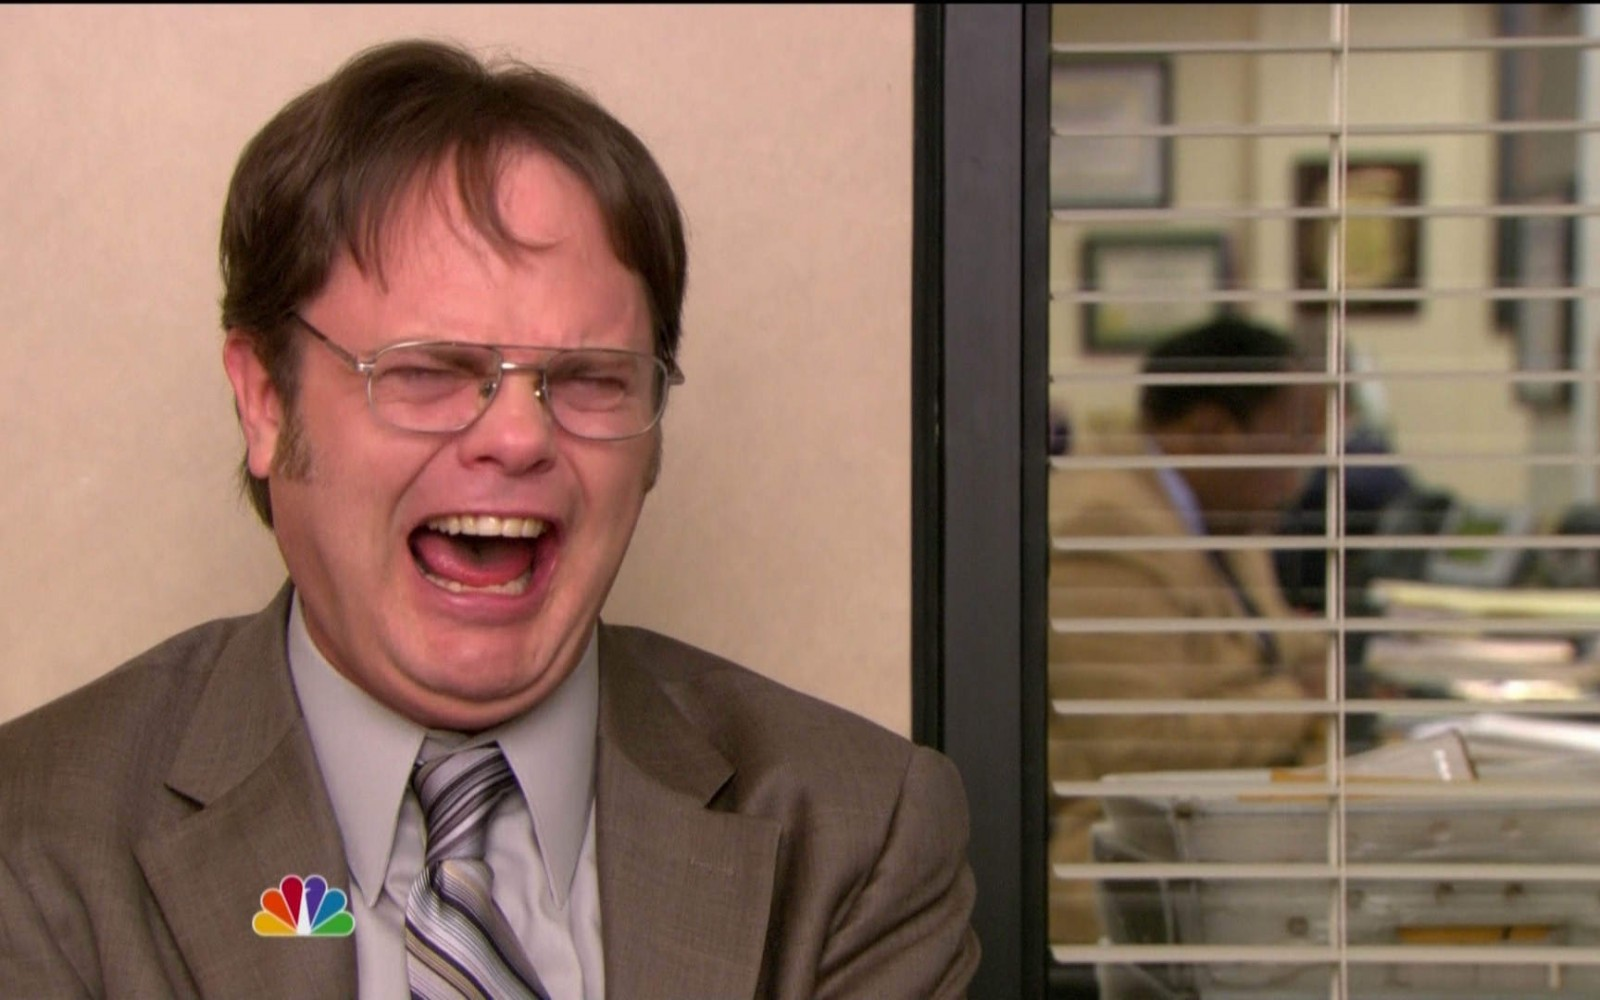 25 Dwight Schrute Quotes That Will Make Your Own Co-Workers Seem More Bearable